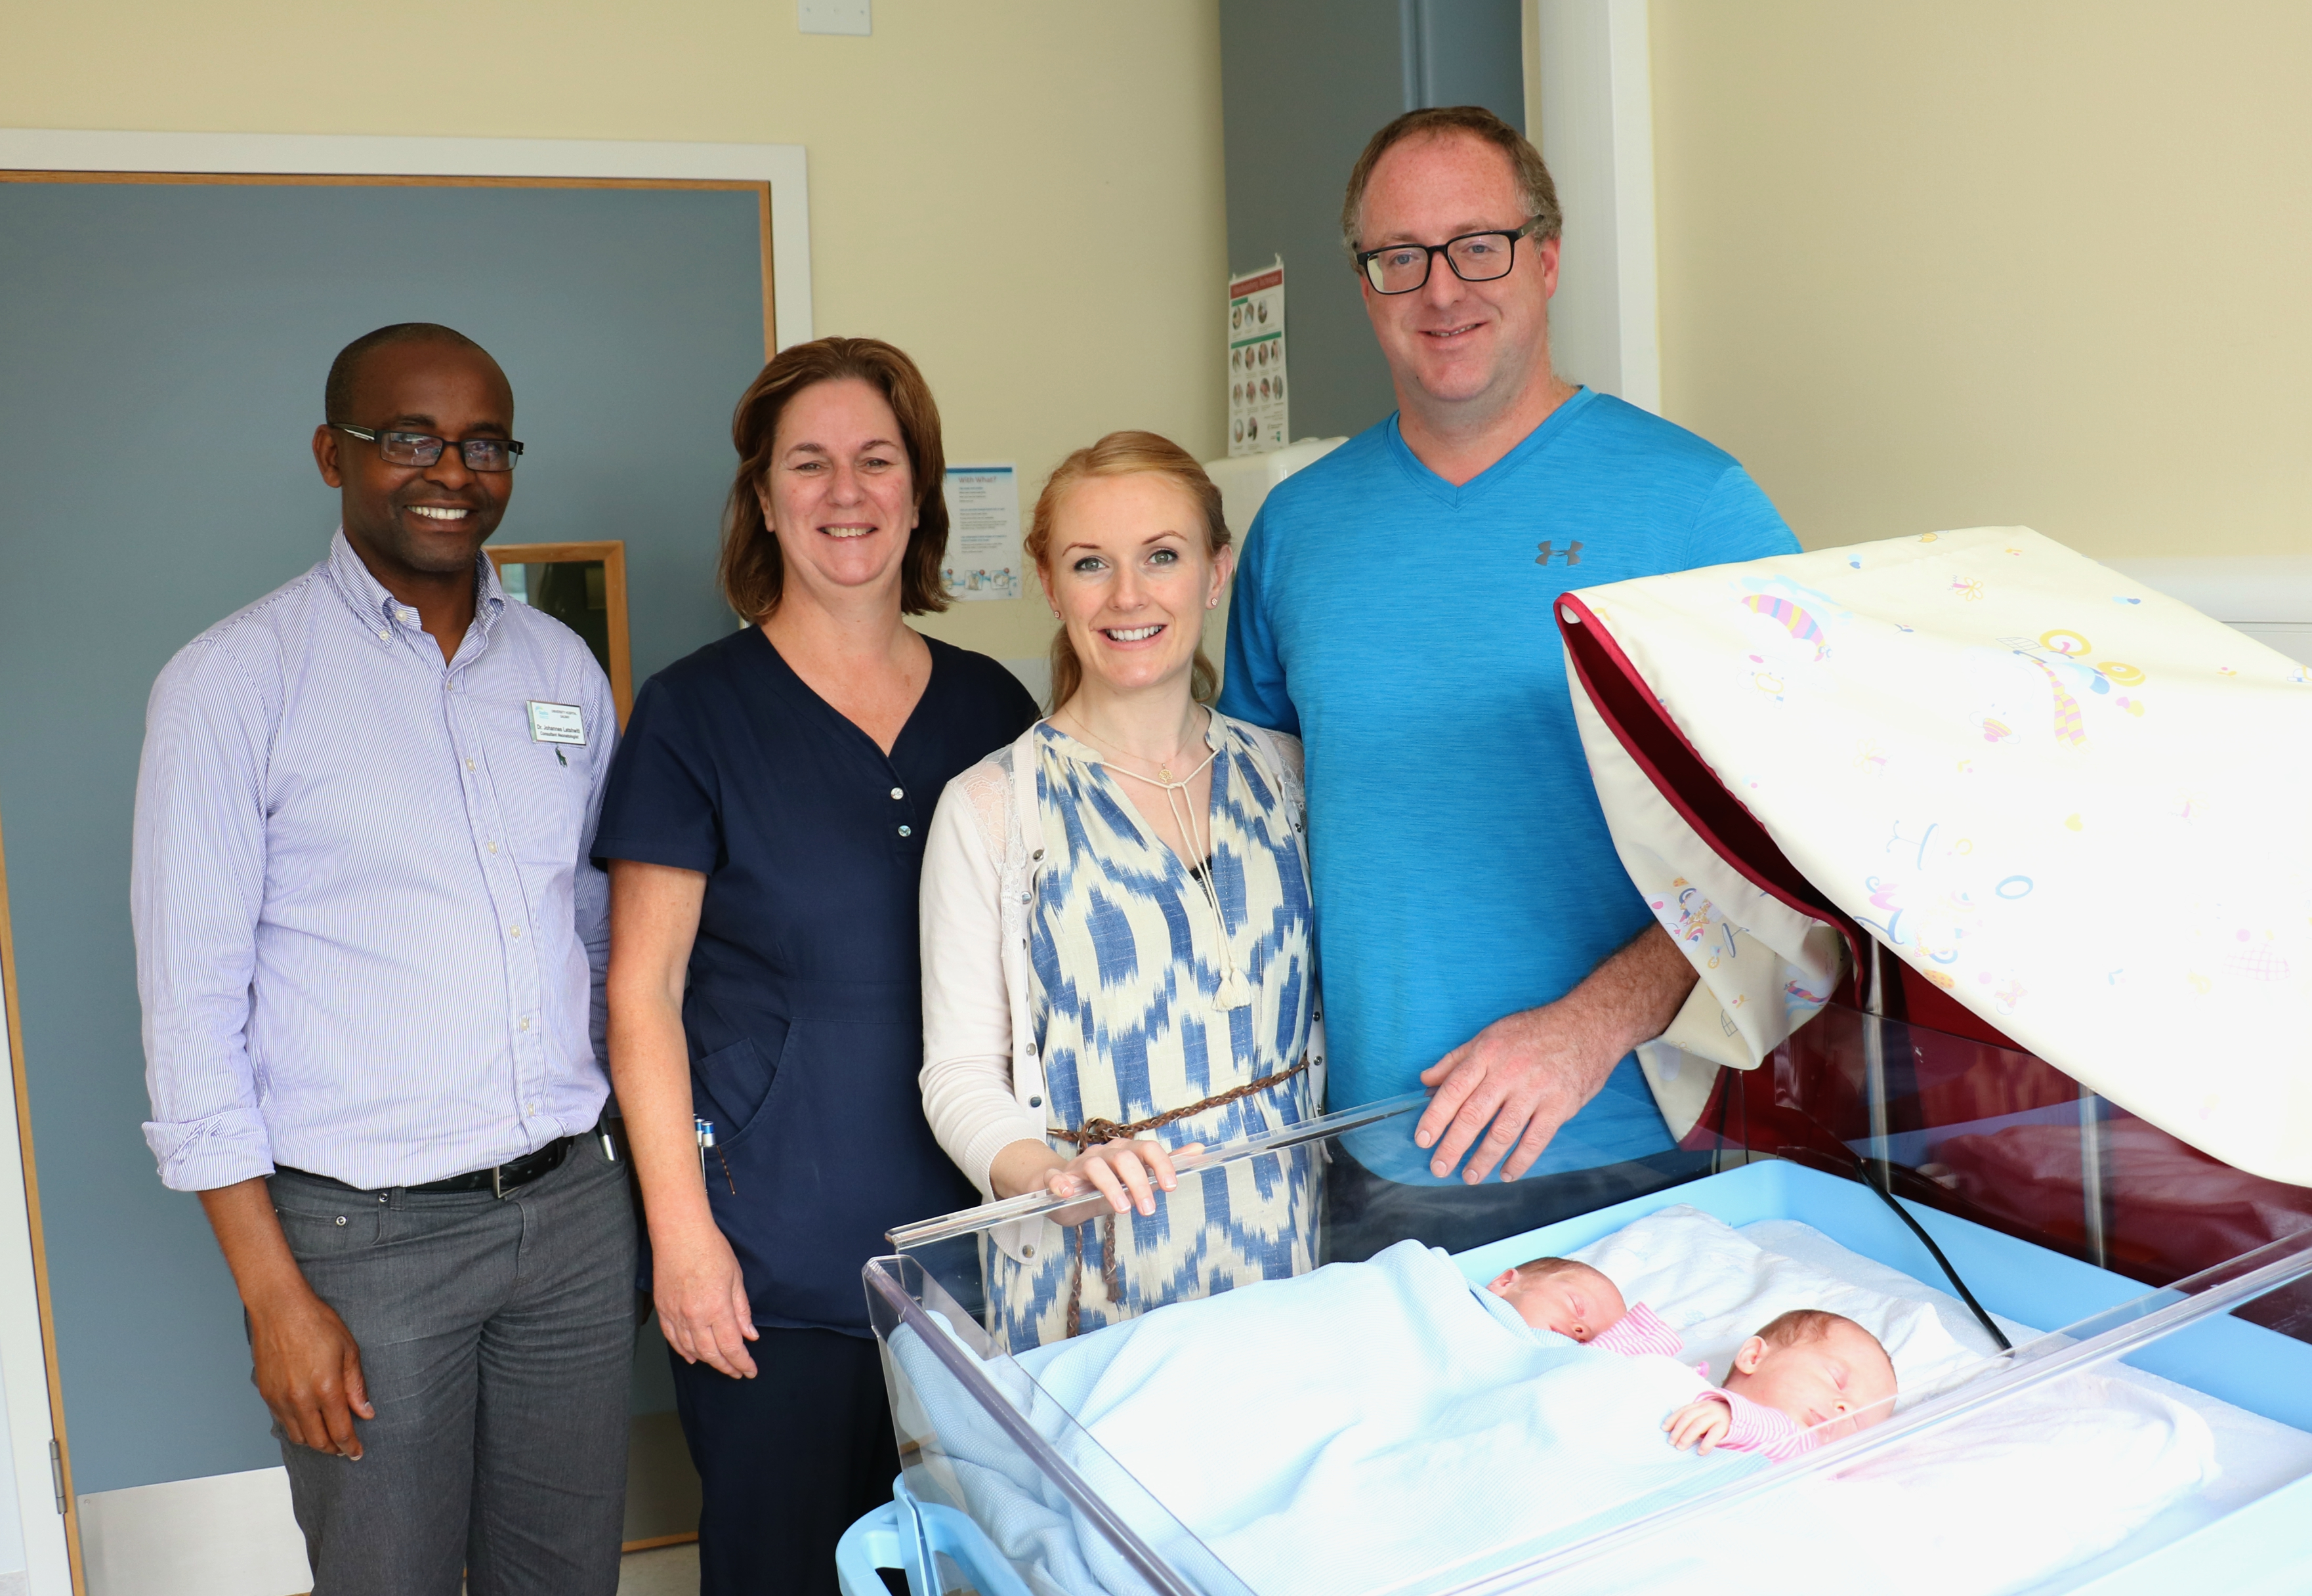 UHG buys new twin cots using funds donated by parents